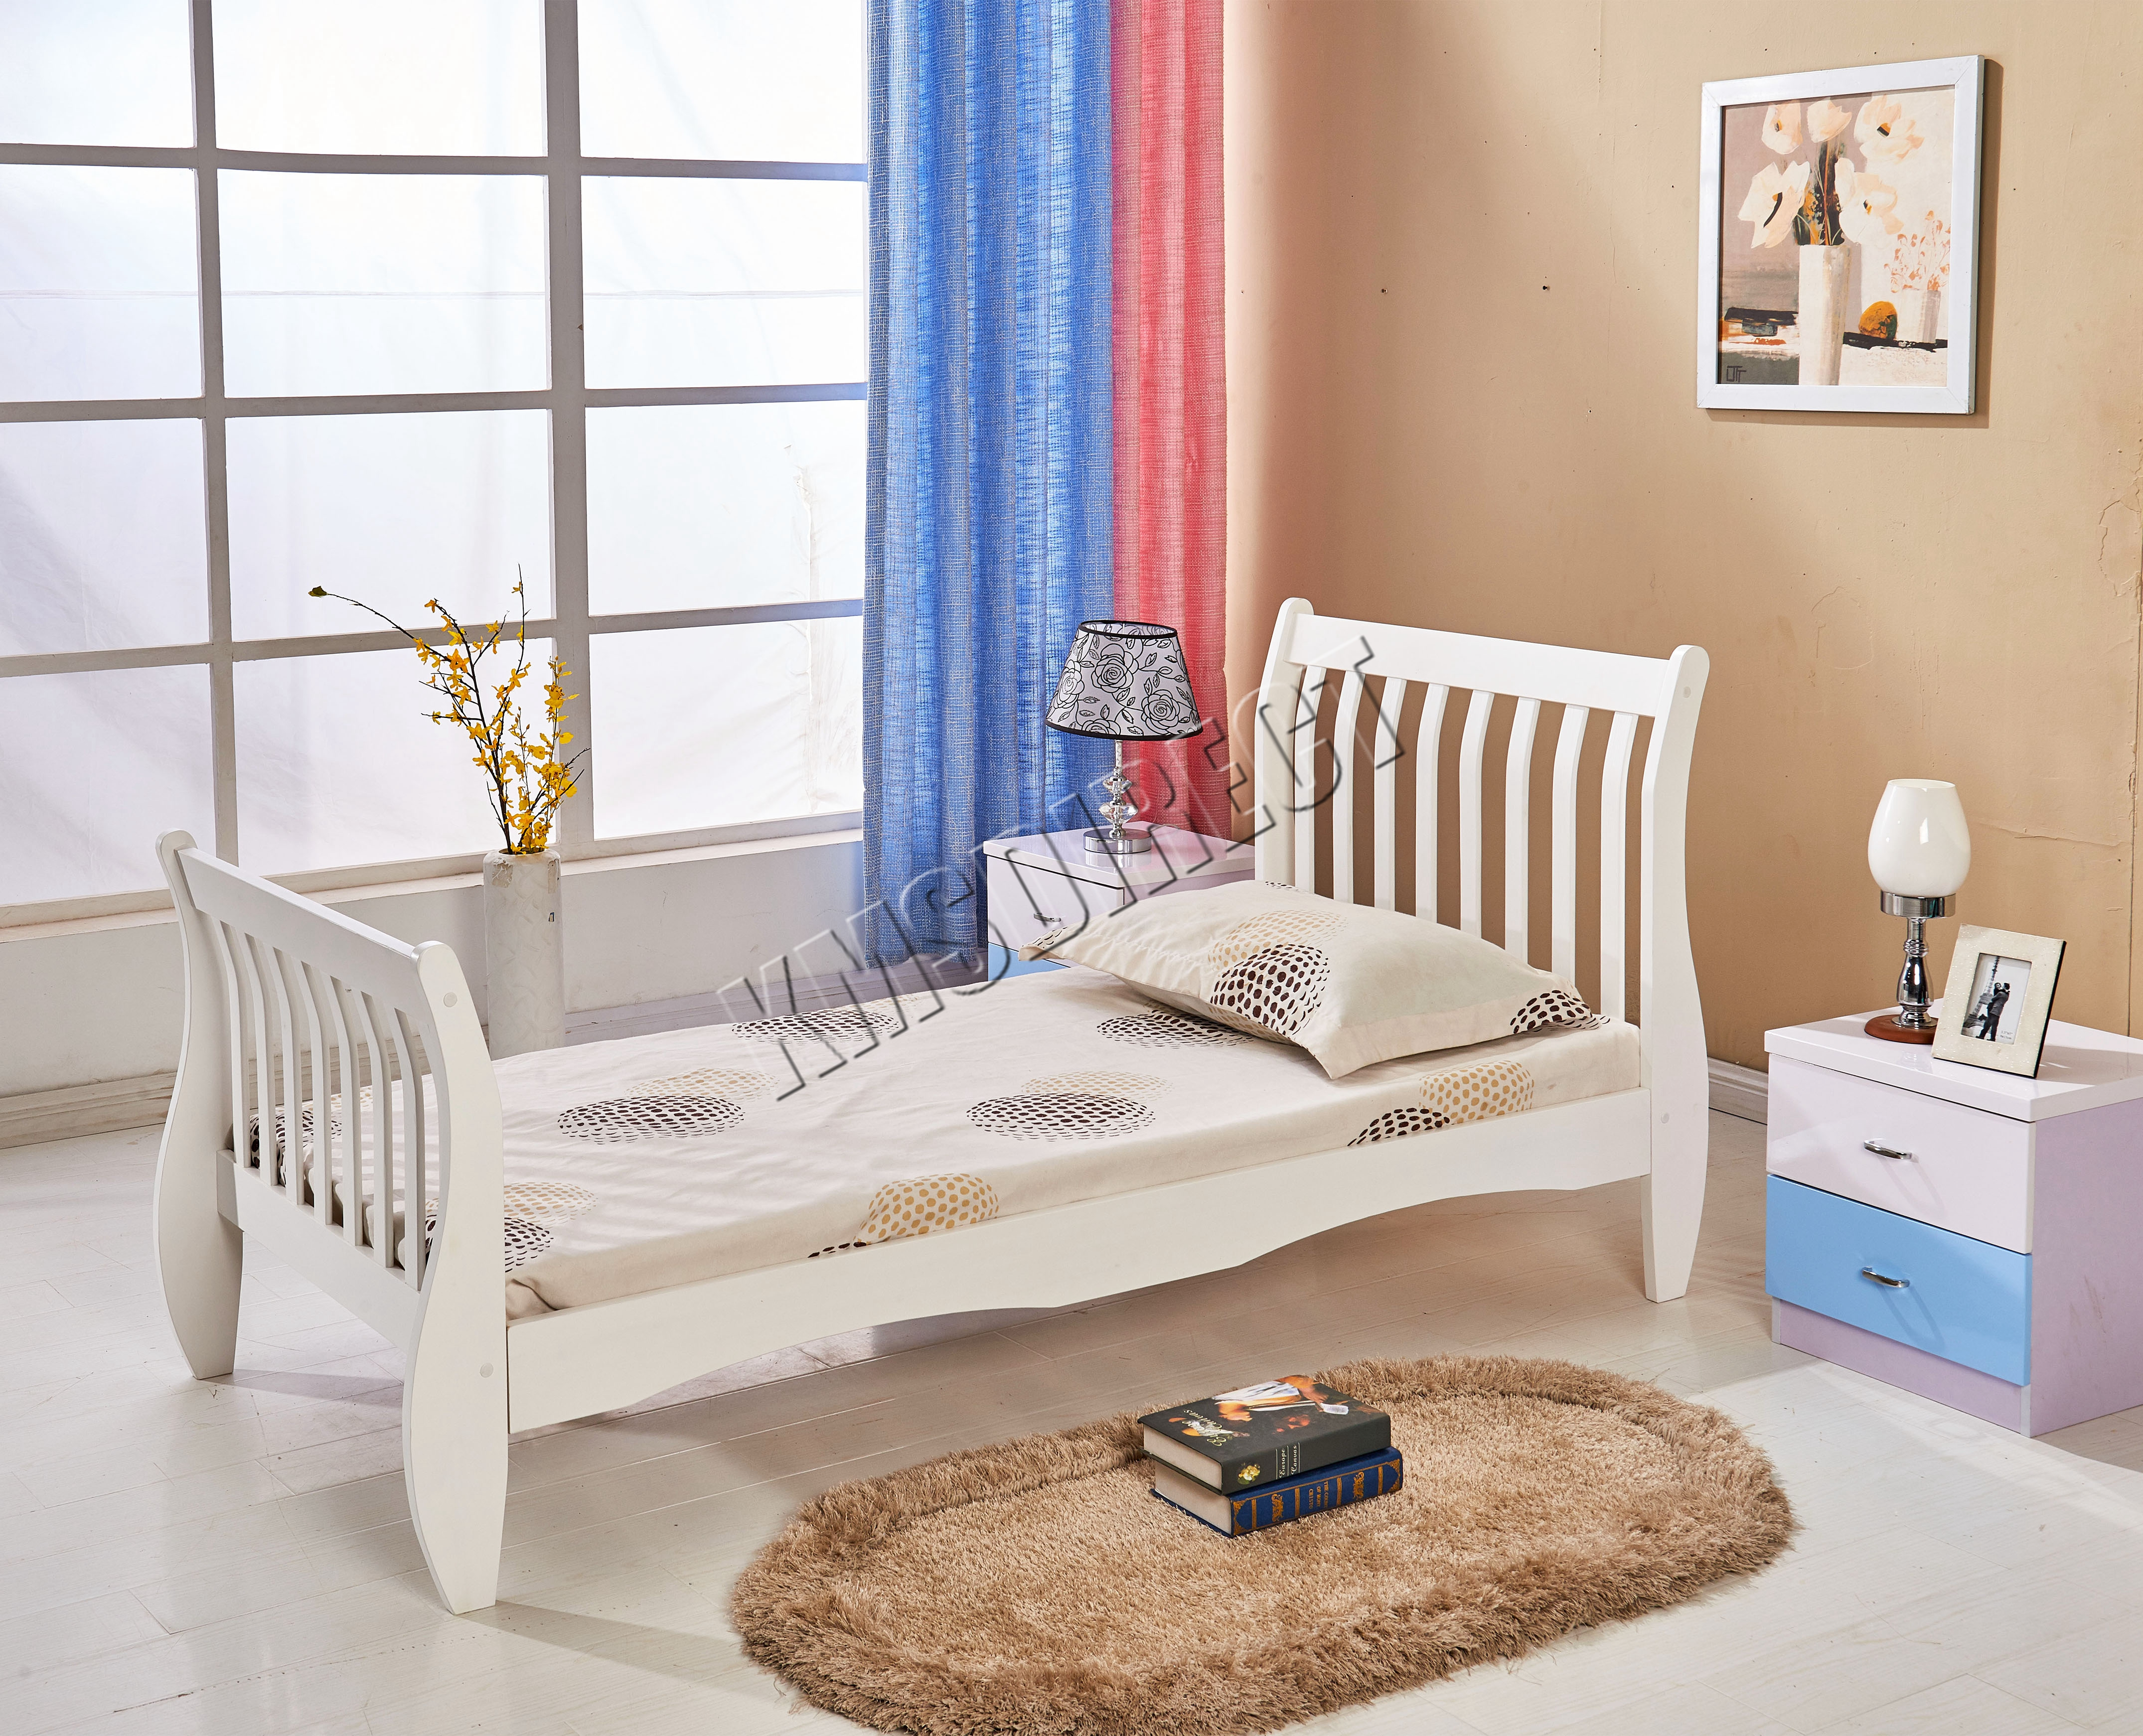 Westwood 3ft single wooden sleigh bed frame pine bedroom - White and pine bedroom furniture ...